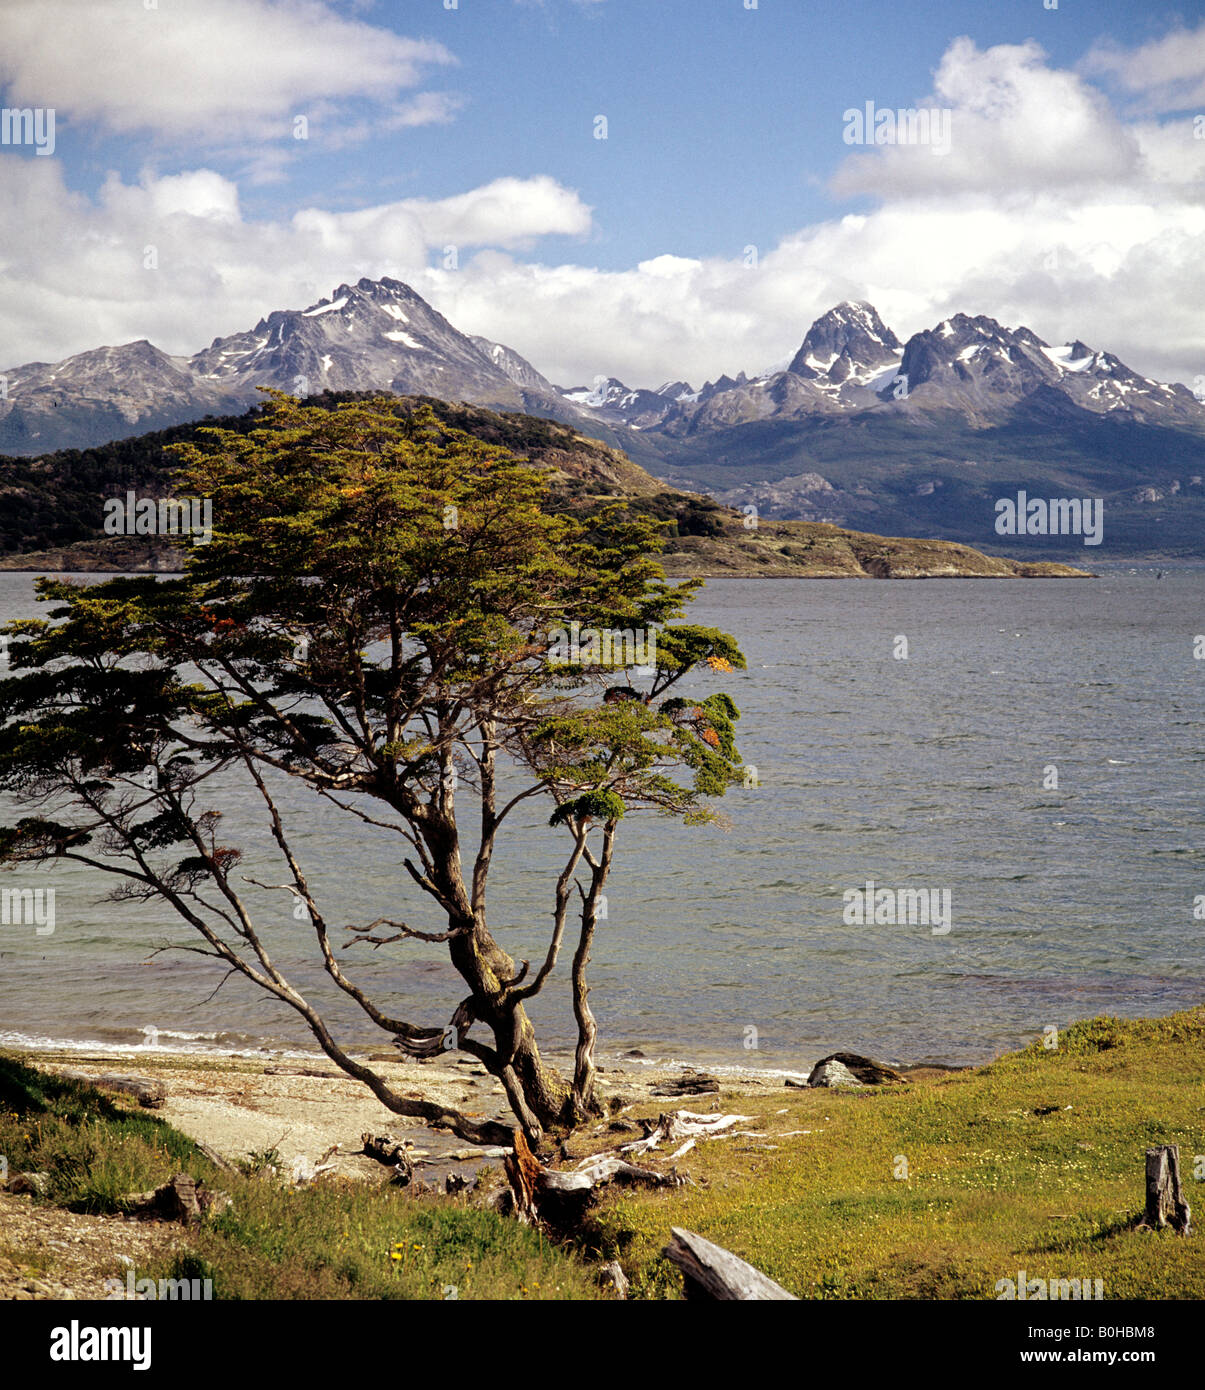 Ushuaia, southernmost town in Argentina, view over Beagle Channel toward the Chilean Andes, Tierra del Fuego National - Stock Image